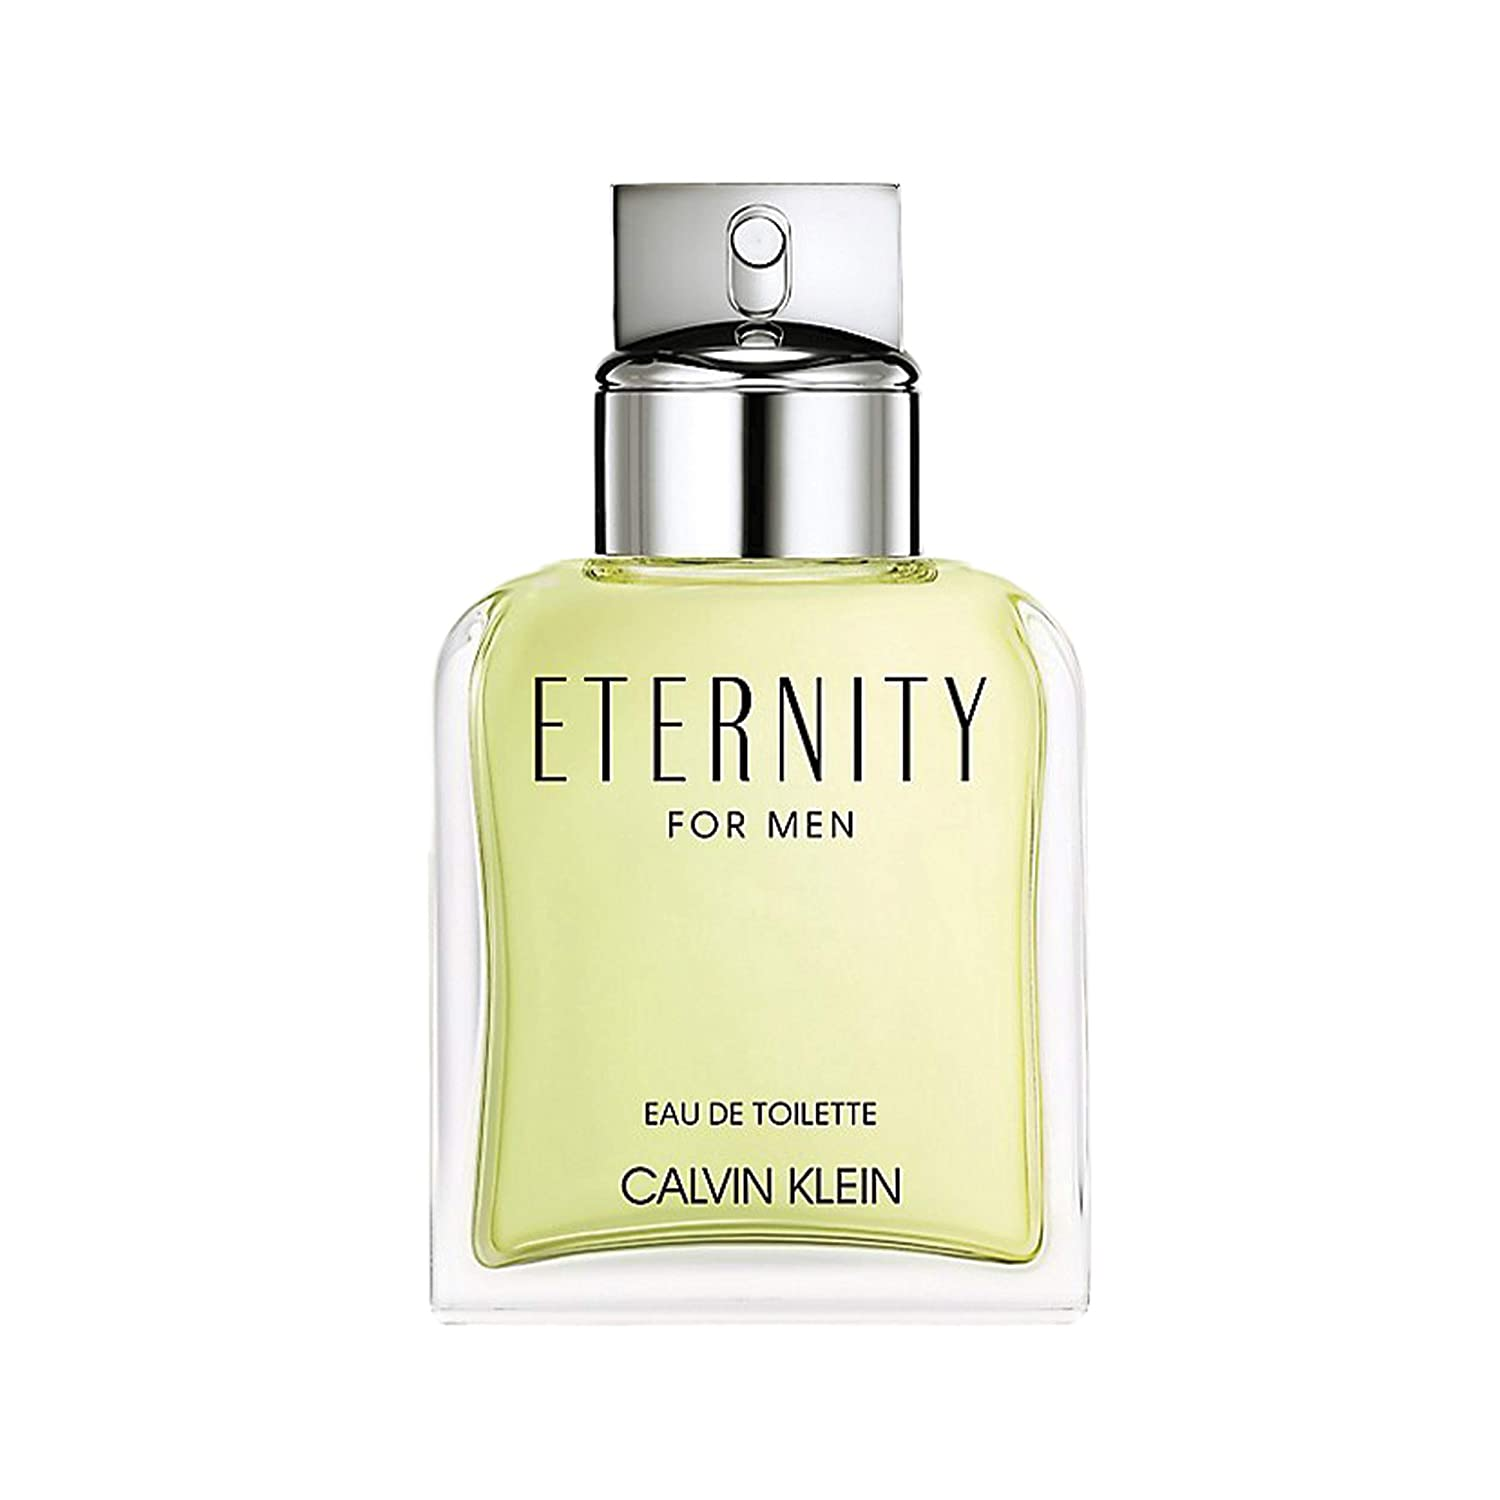 Calvin Klein Eternity For Men Eau De Toilette 1 6 Fl Oz Calvin Klein Premium Beauty